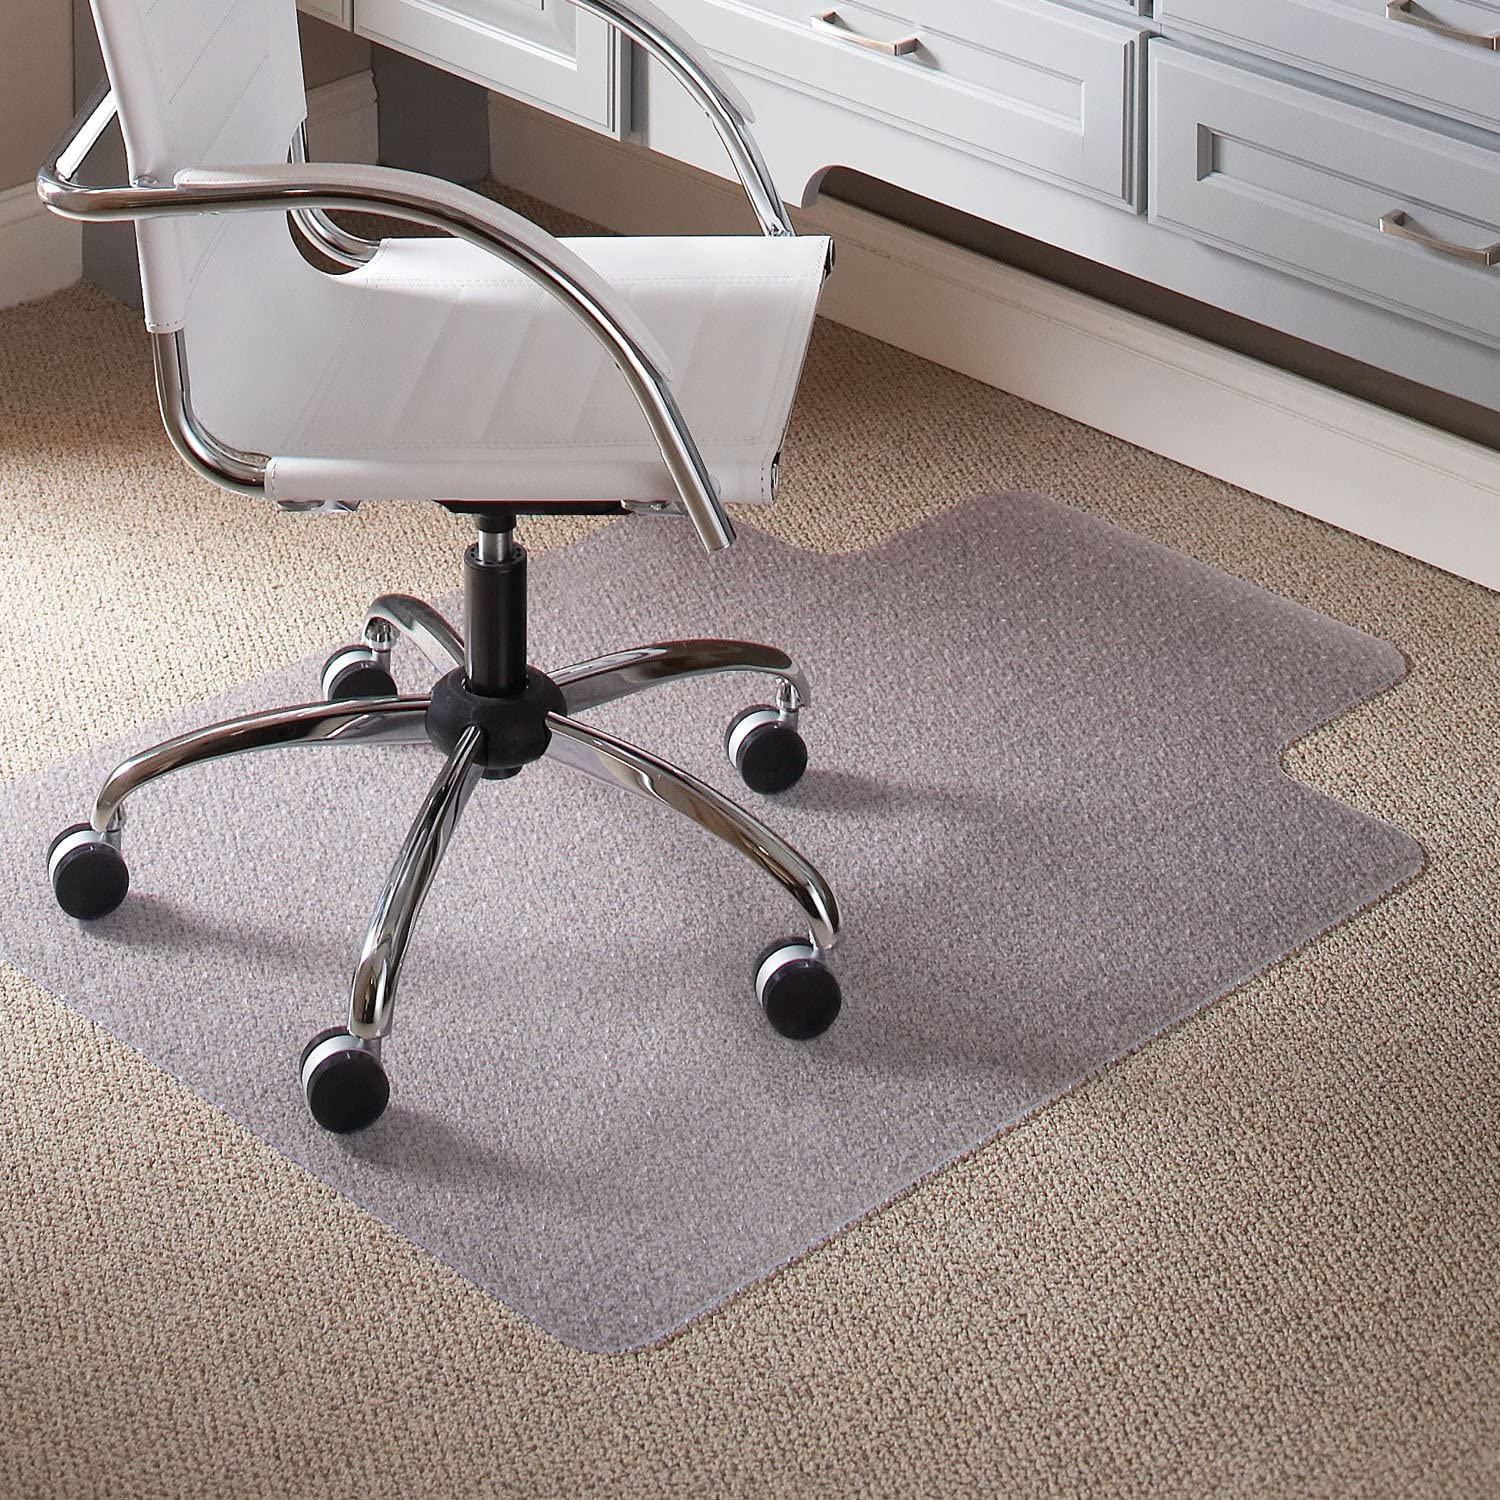 Practical PVC Transparent Mat Easy Glide for Chairs AOUTLE Chair Mat Floor Mats for Computer Desk Non Slip Anti Scratch Flat Without Curling